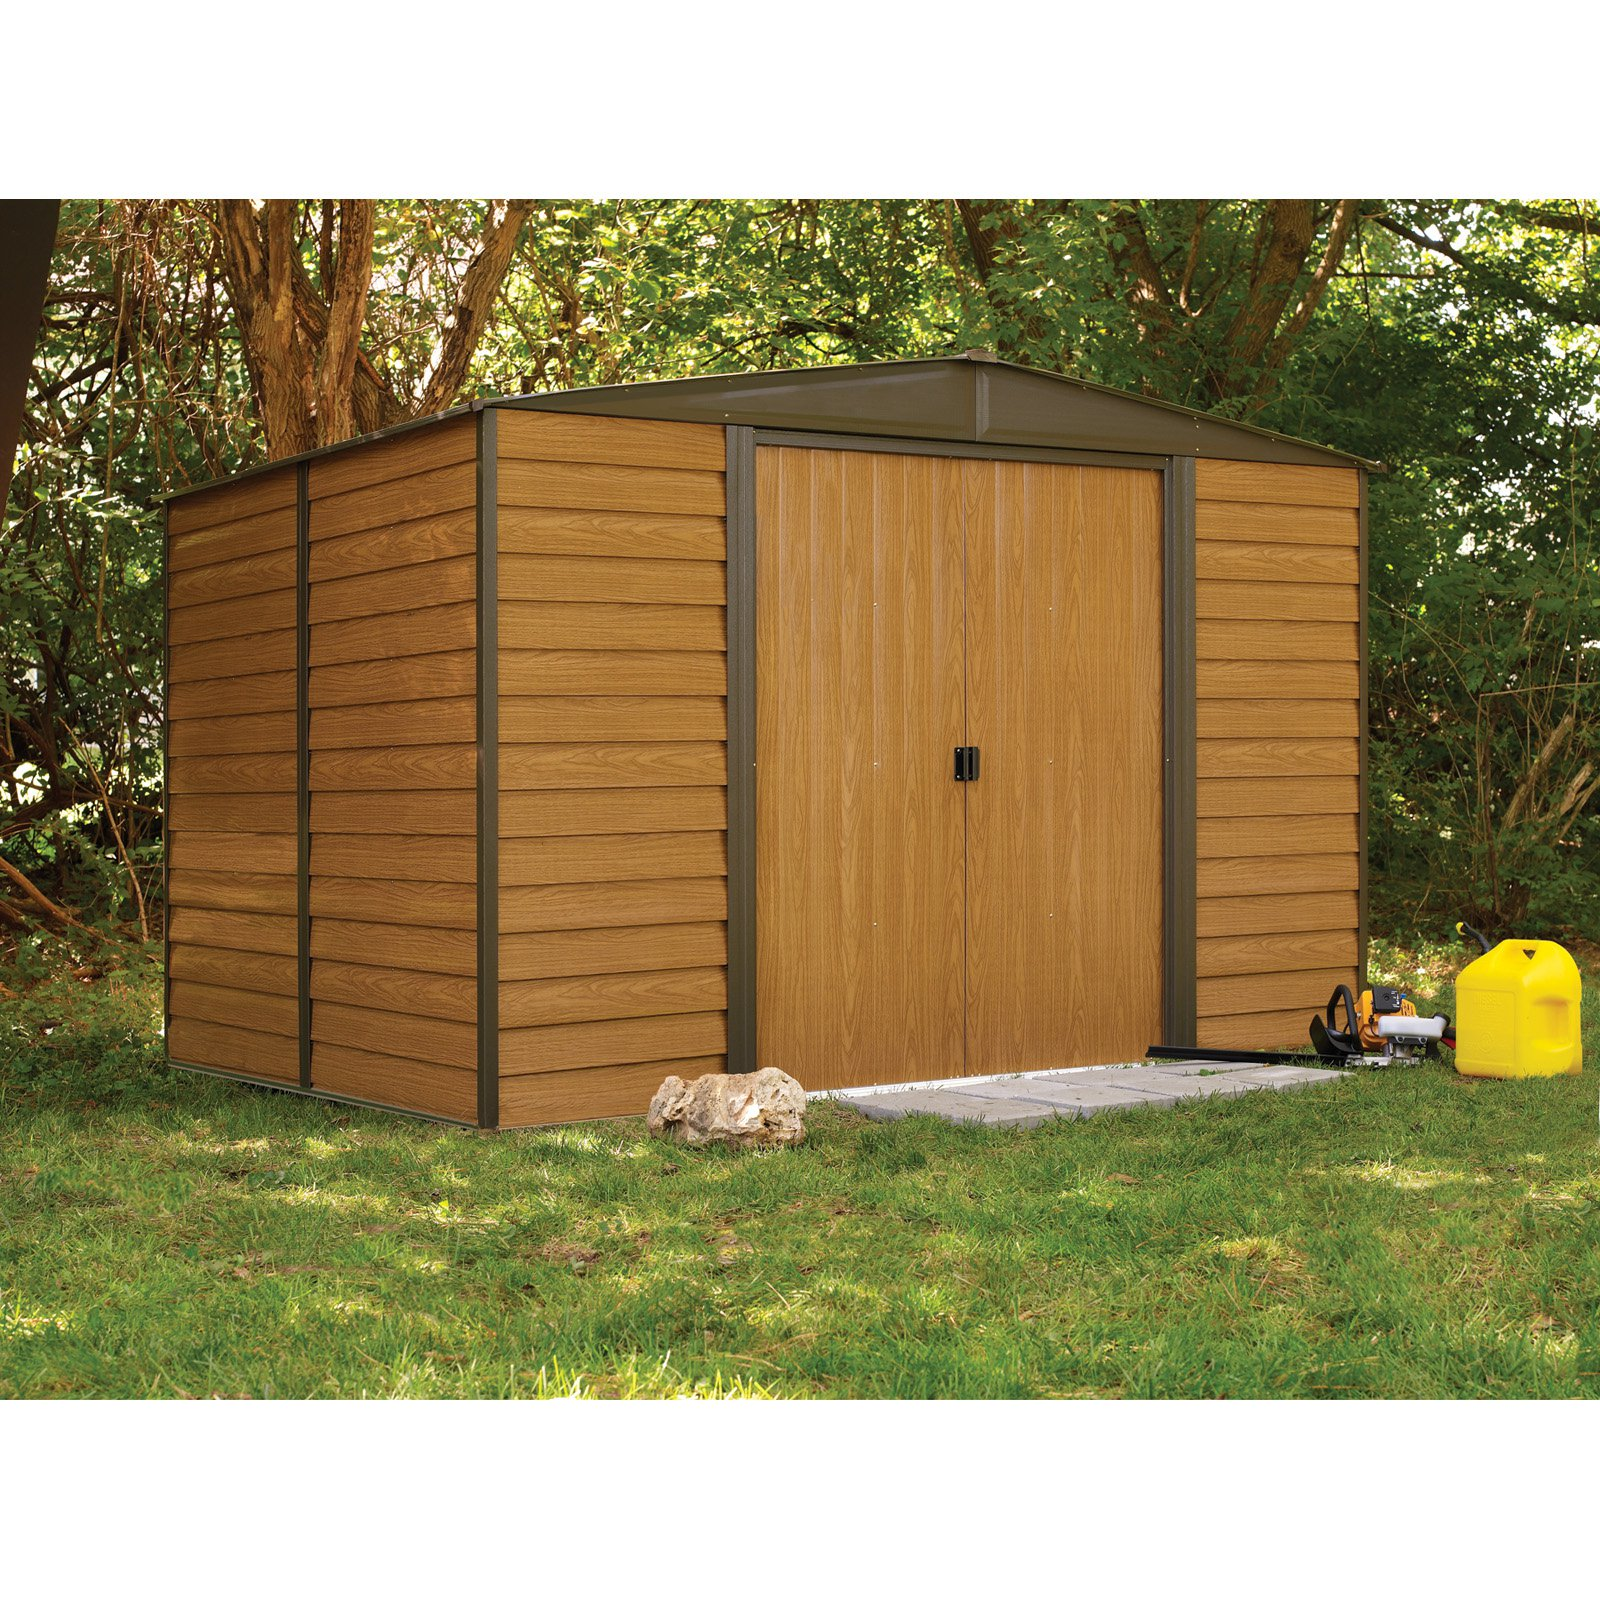 arrow shed woodridge 10 x 6 ft steel storage shed walmartcom - Garden Sheds 6 X 5